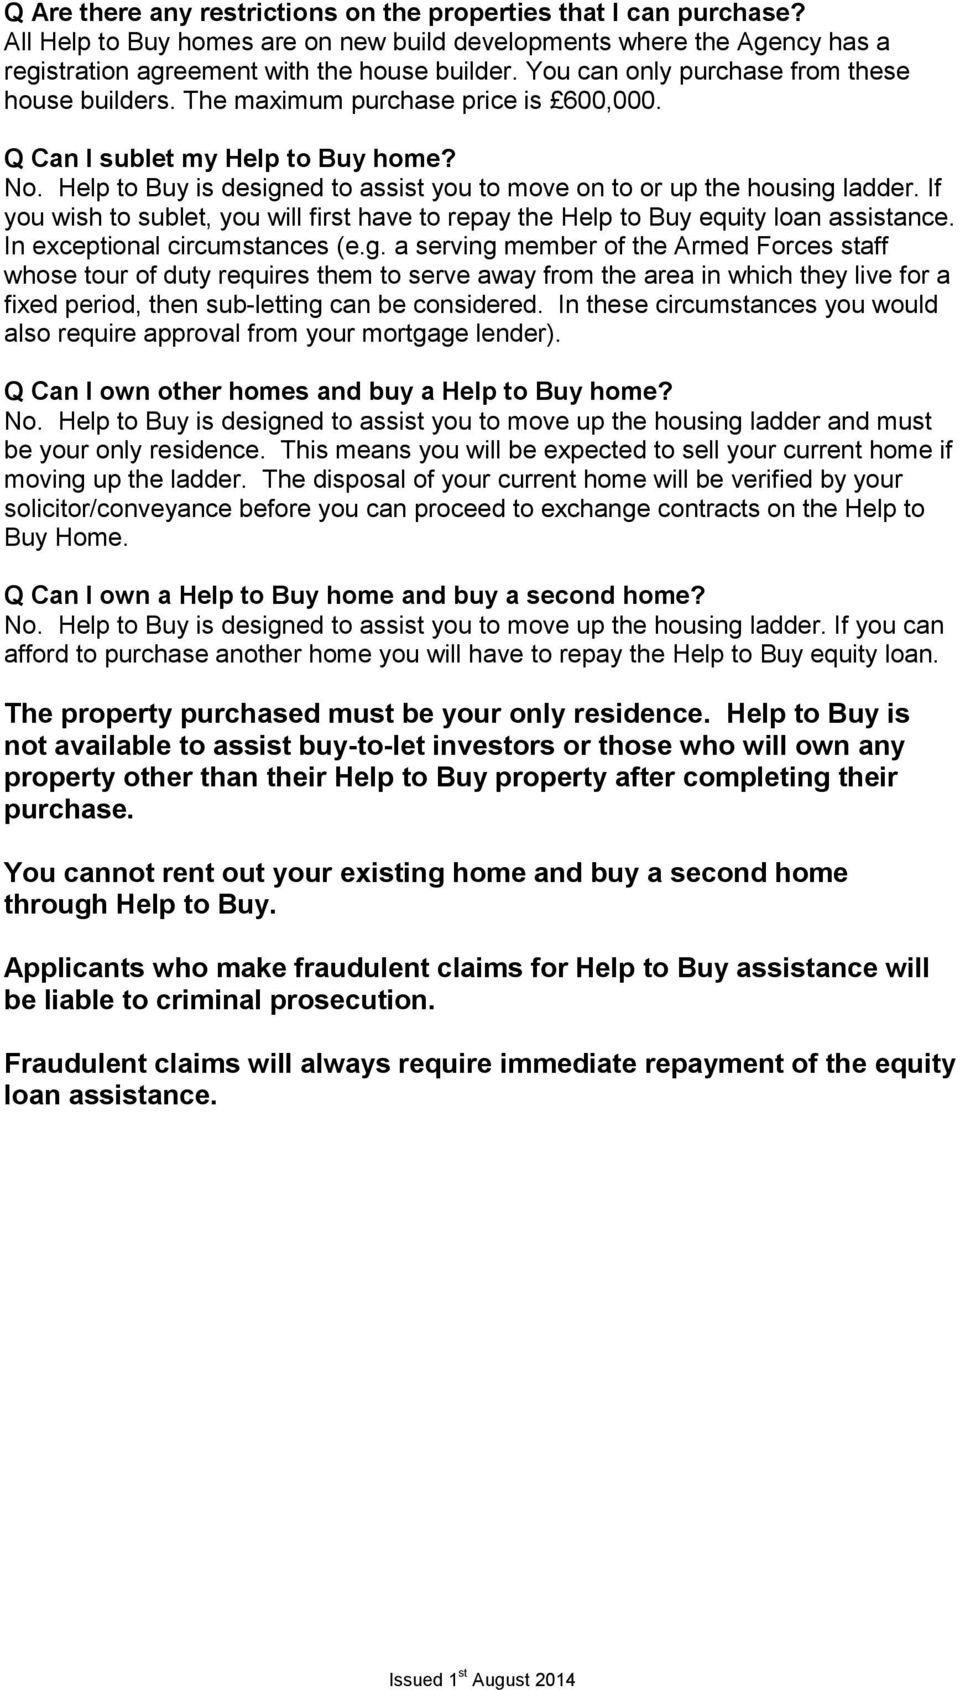 Help to Buy is designed to assist you to move on to or up the housing ladder. If you wish to sublet, you will first have to repay the Help to Buy equity loan assistance.